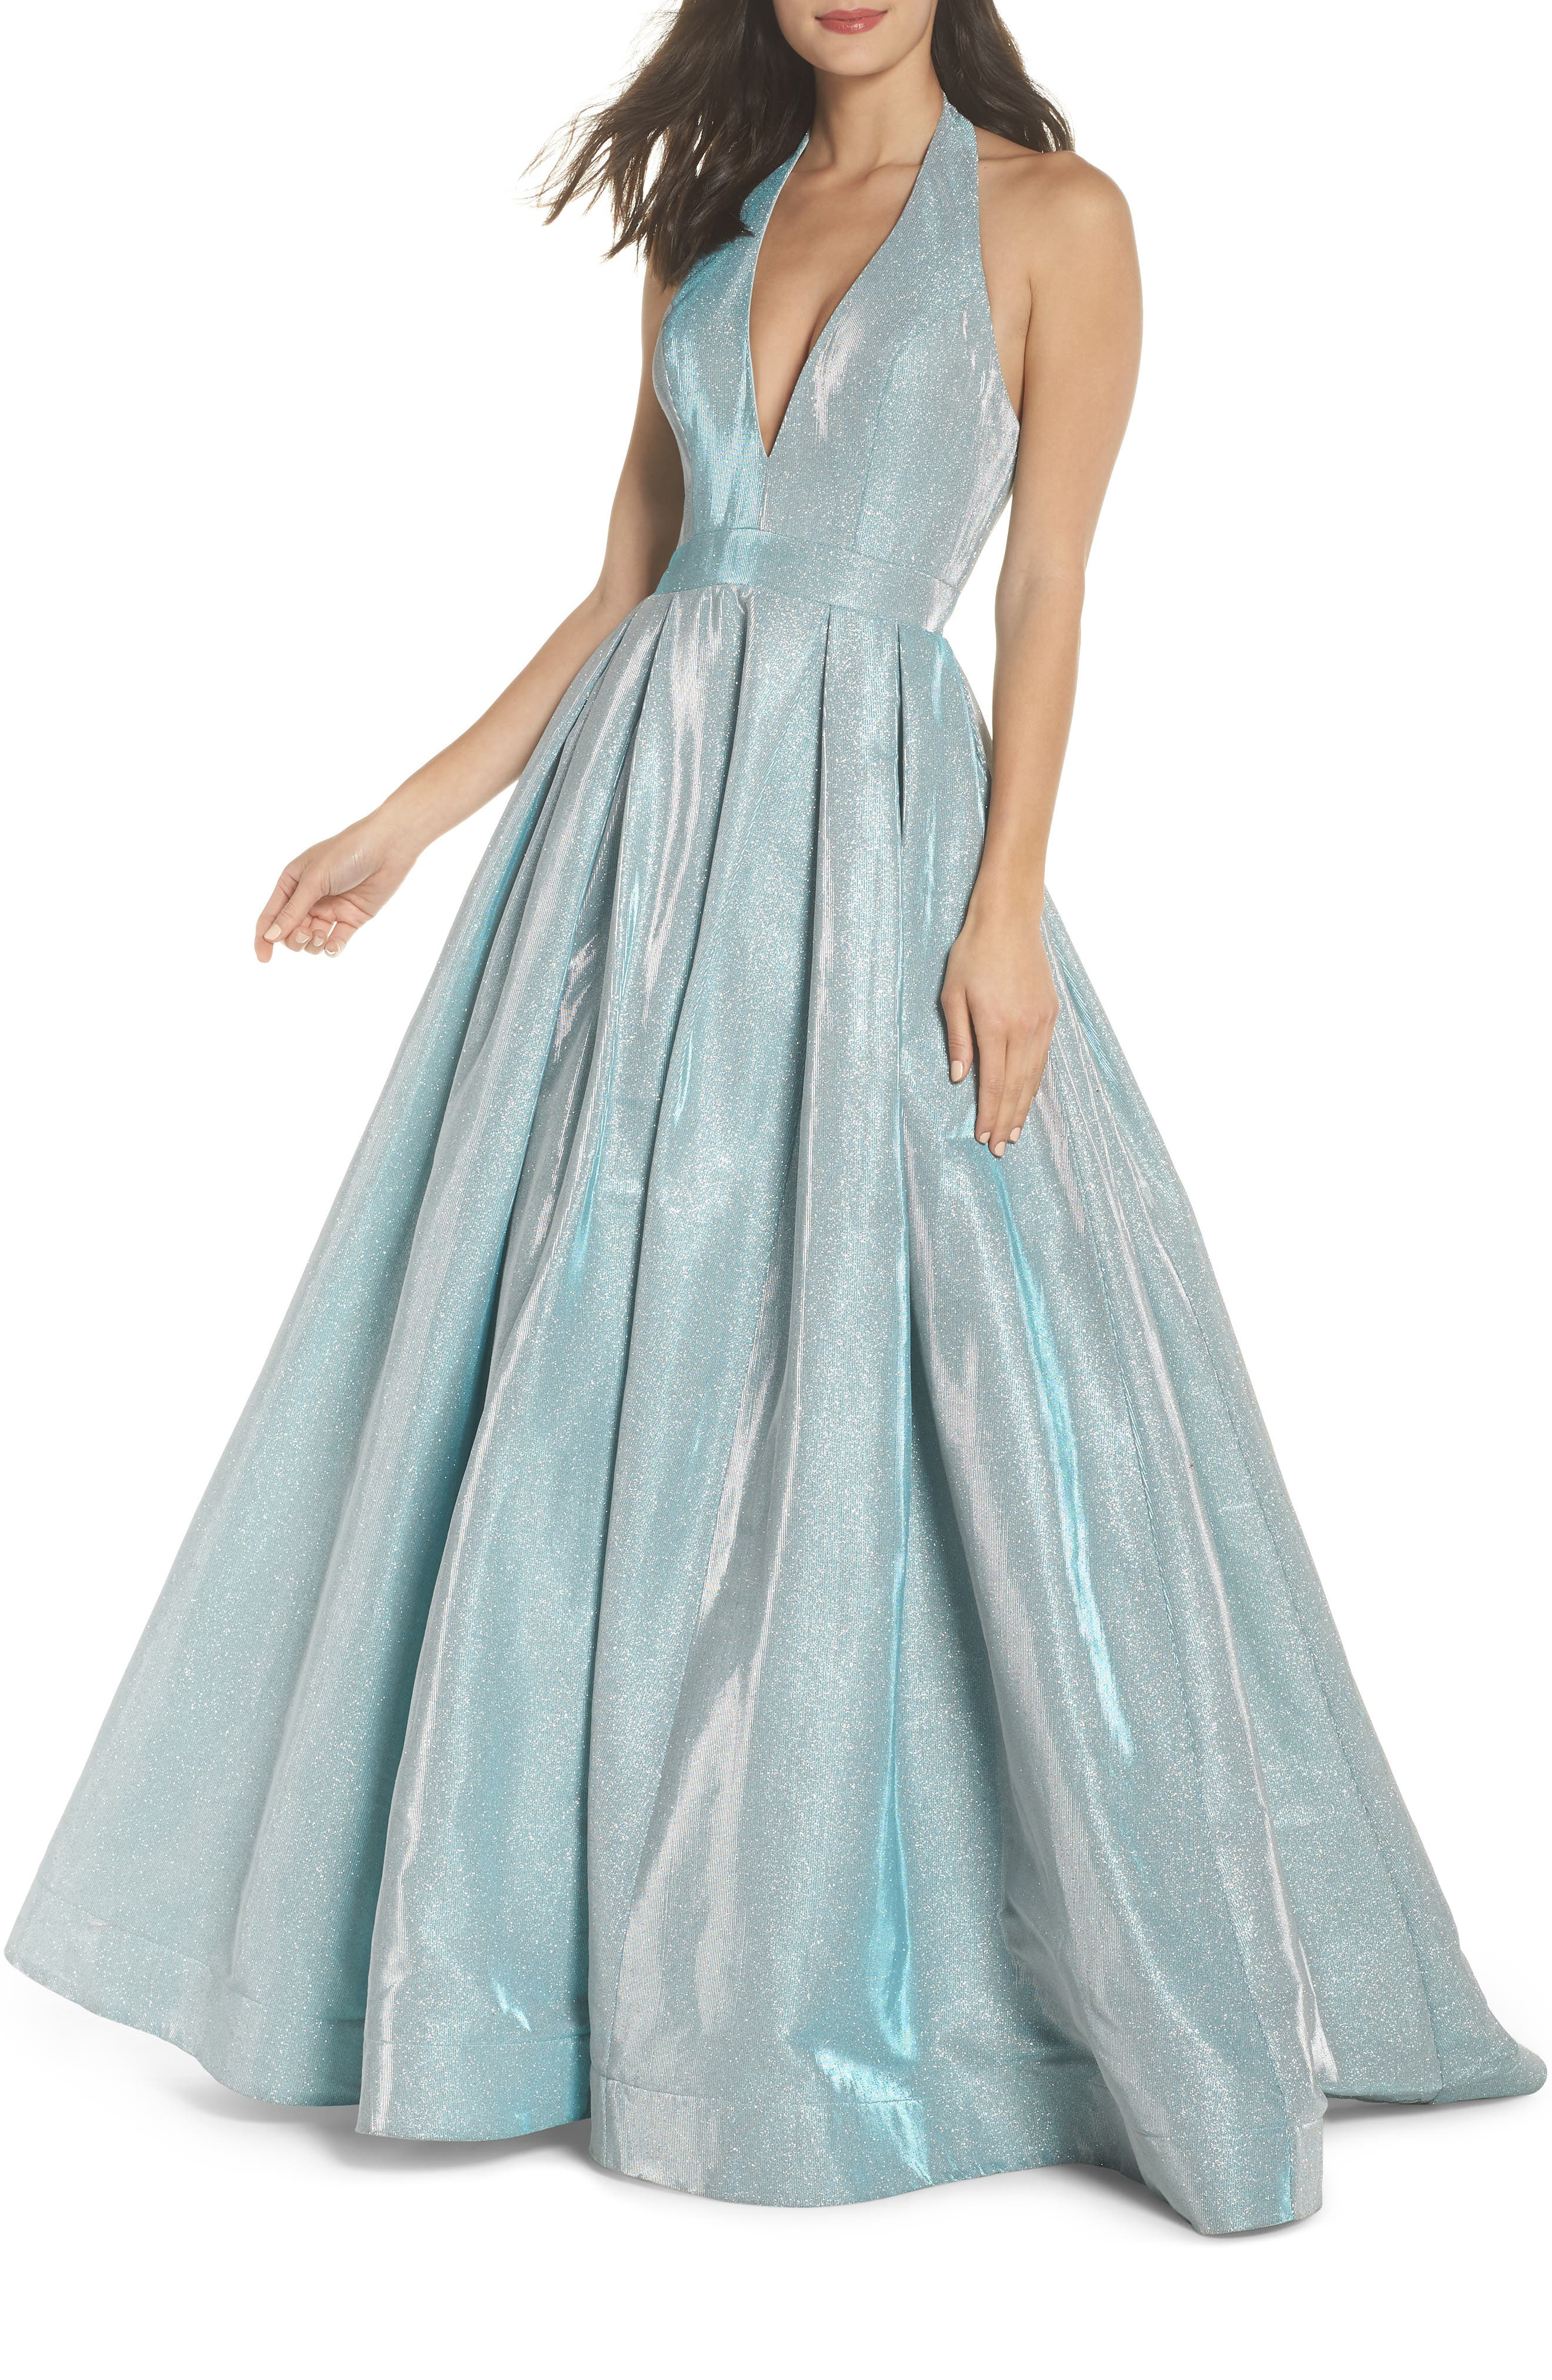 IEENA FOR MAC DUGGAL Mac Duggal Shimmering Halter Neck Ballgown, Main, color, SHIMMERING ICE